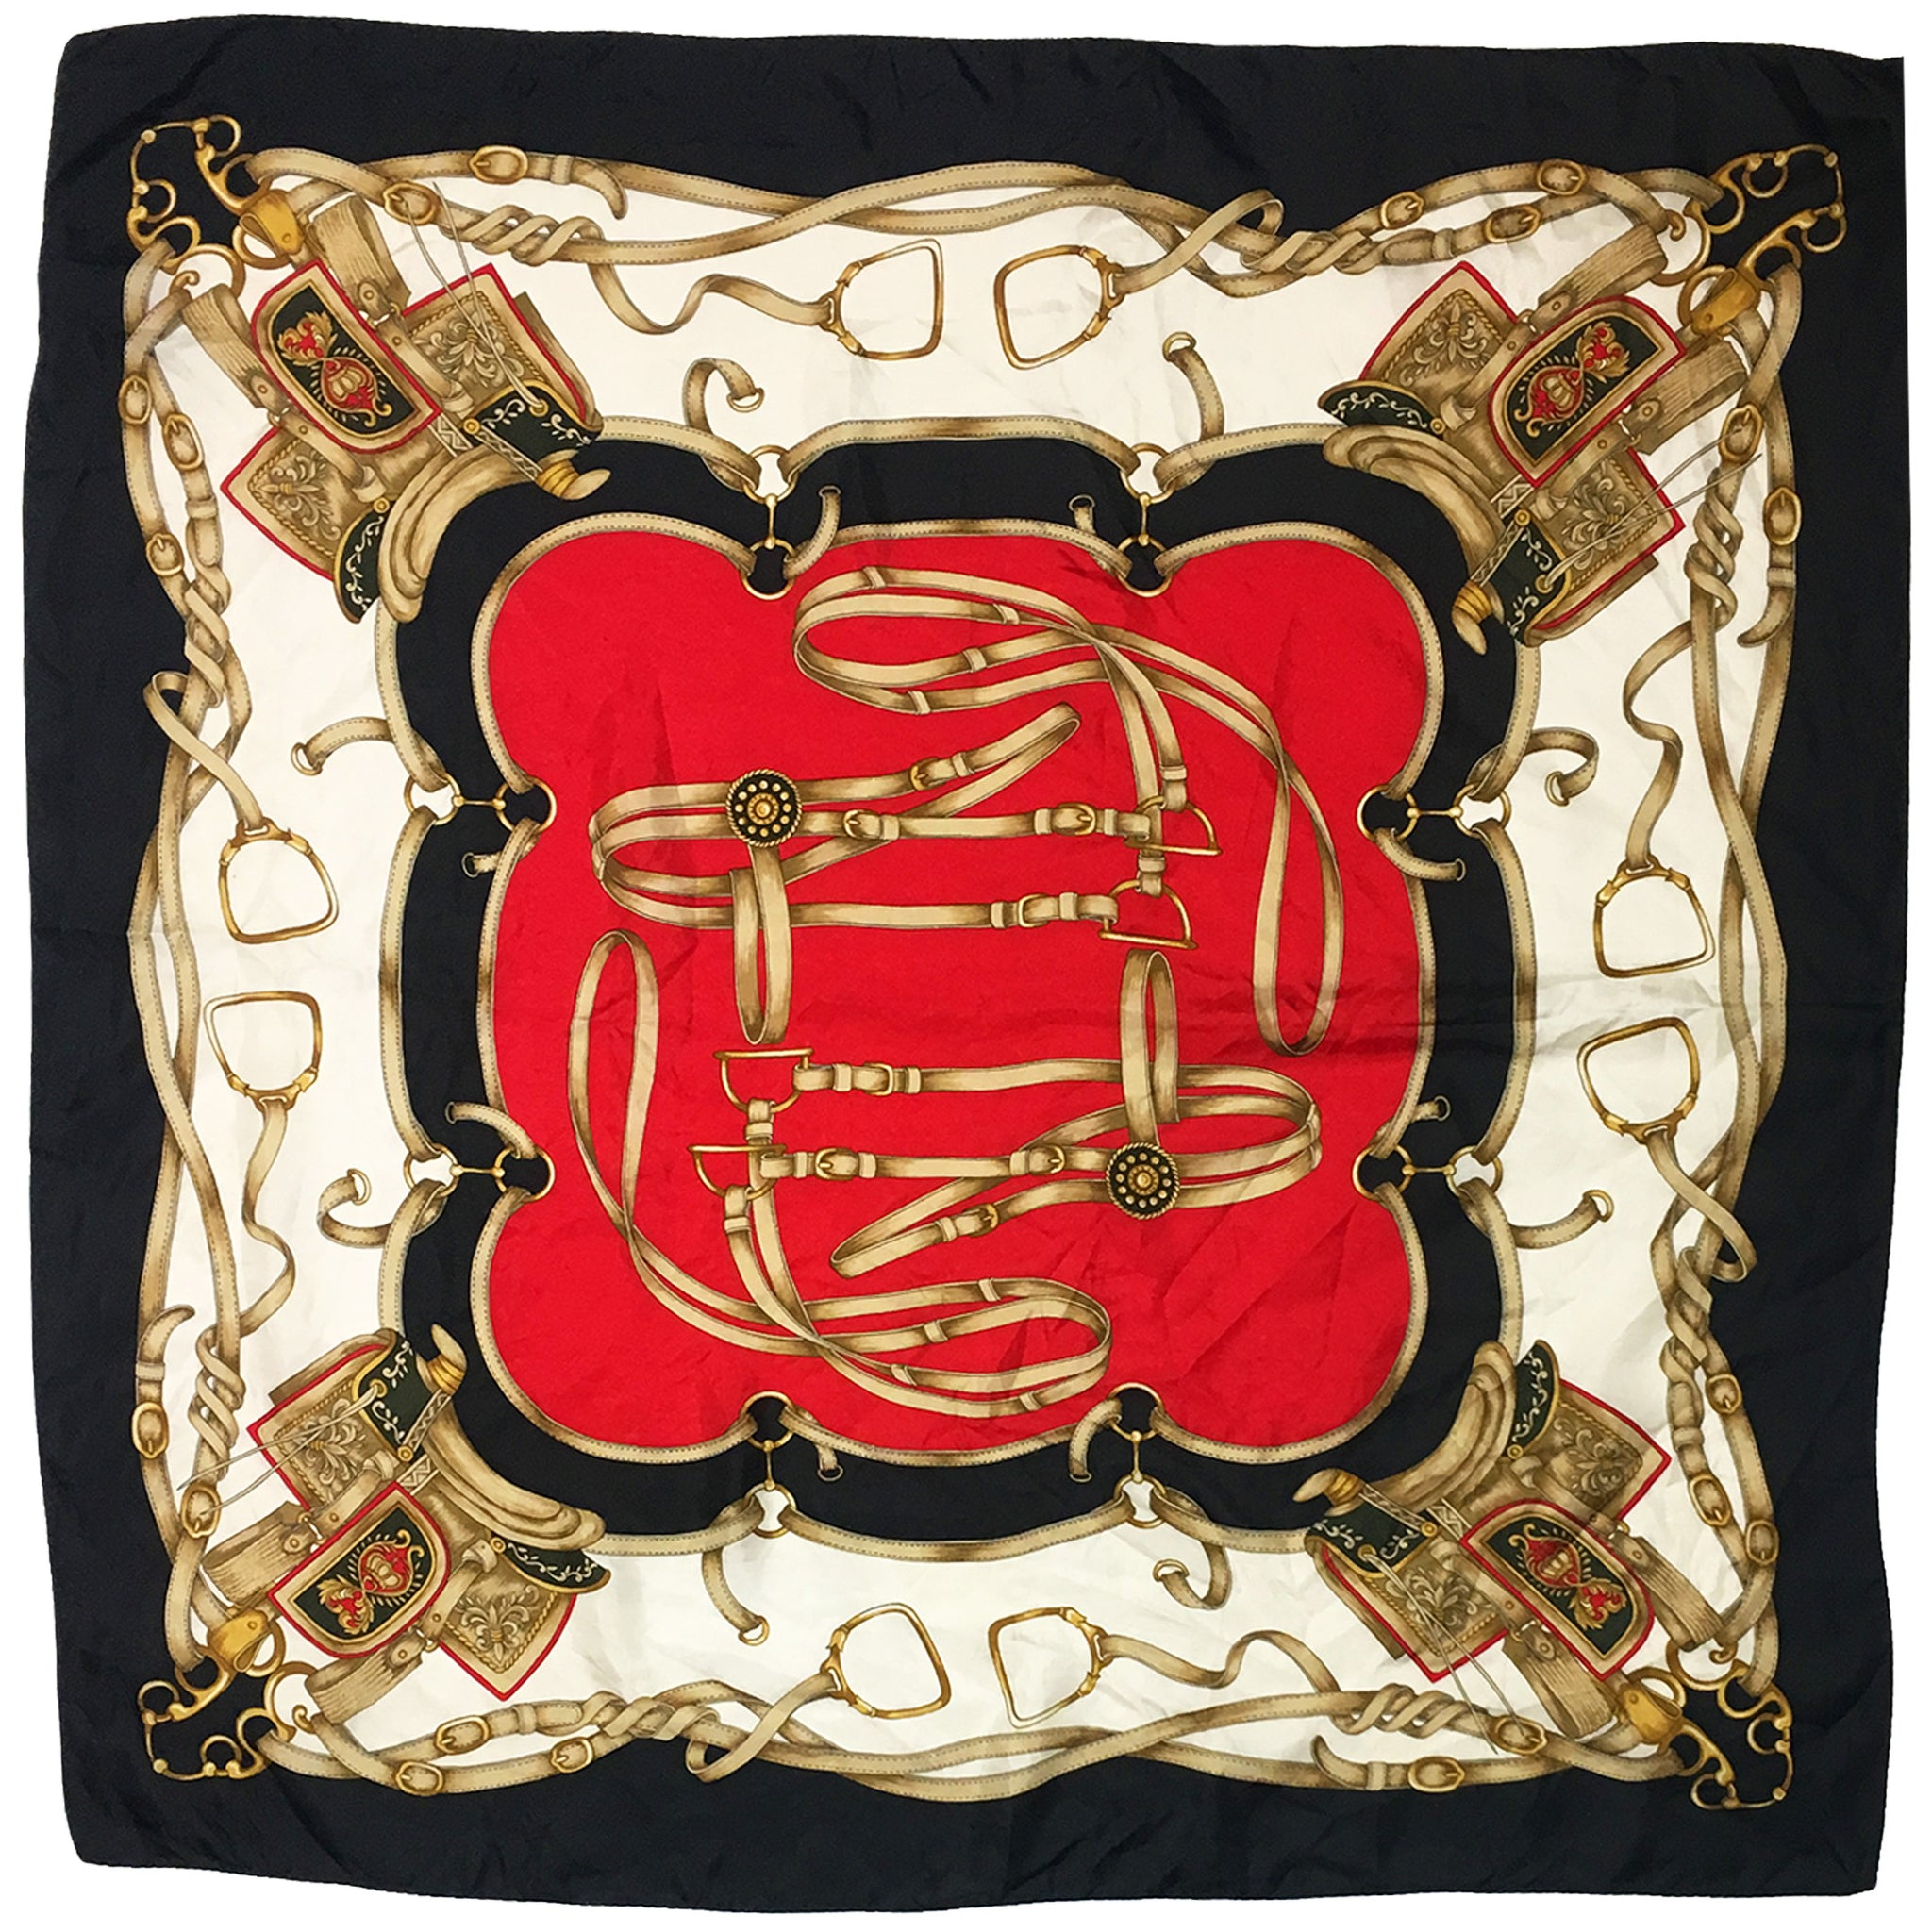 Gold & Red Horseback Riding Silk Square Scarf